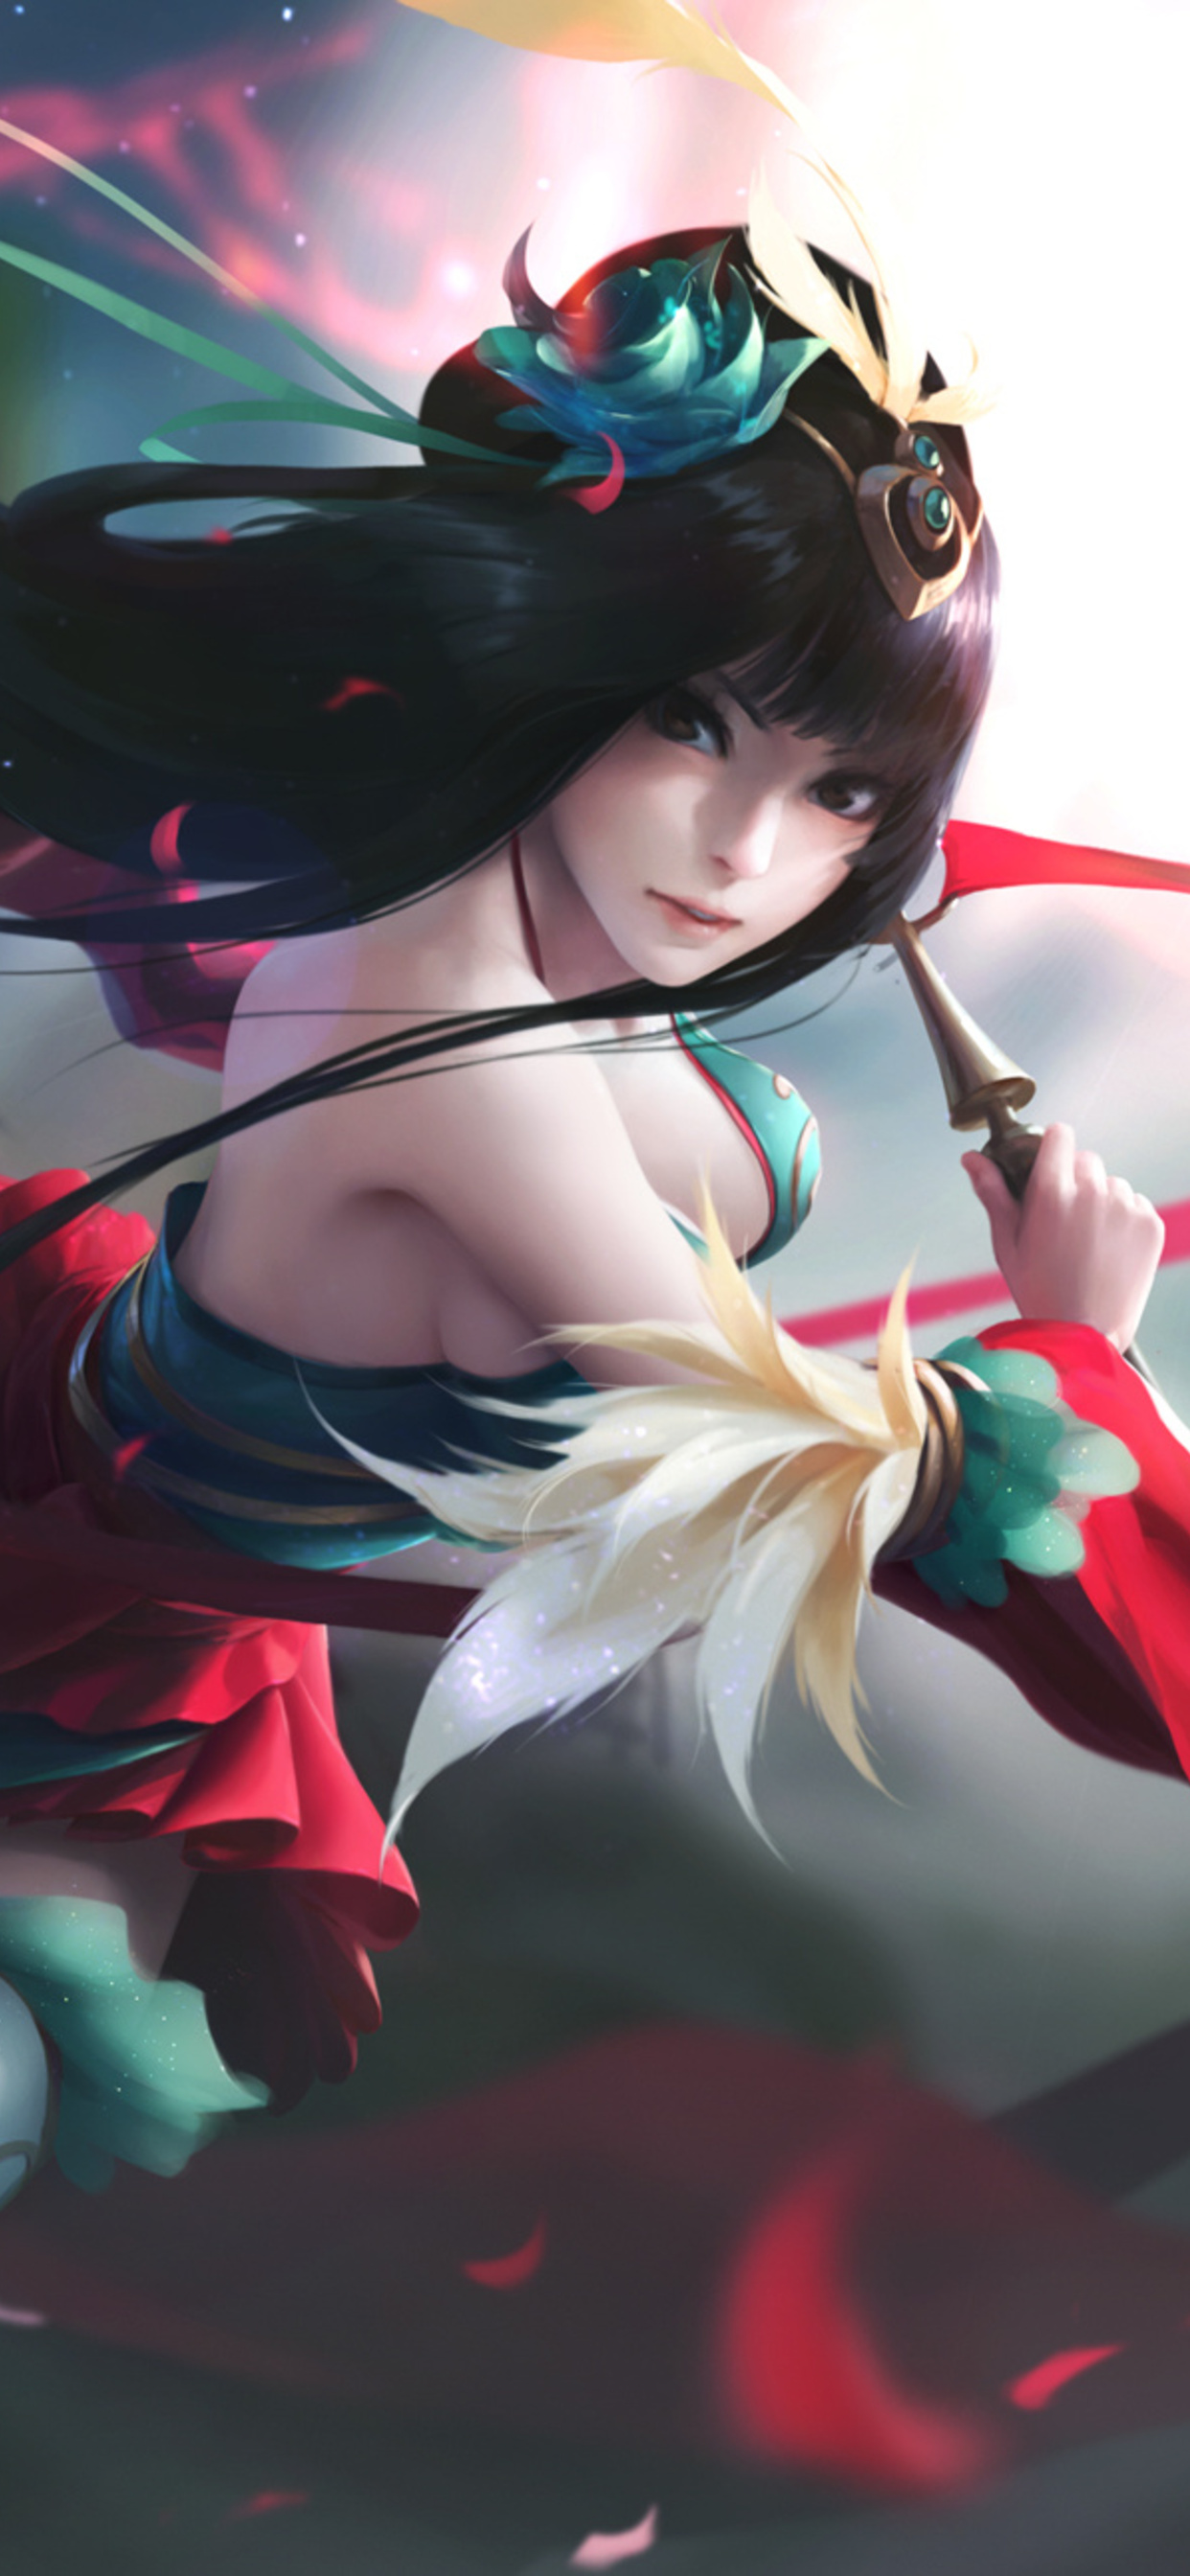 1242x2688 Anime Warrior Long Hair Girl Iphone Xs Max Hd 4k Wallpapers Images Backgrounds Photos And Pictures